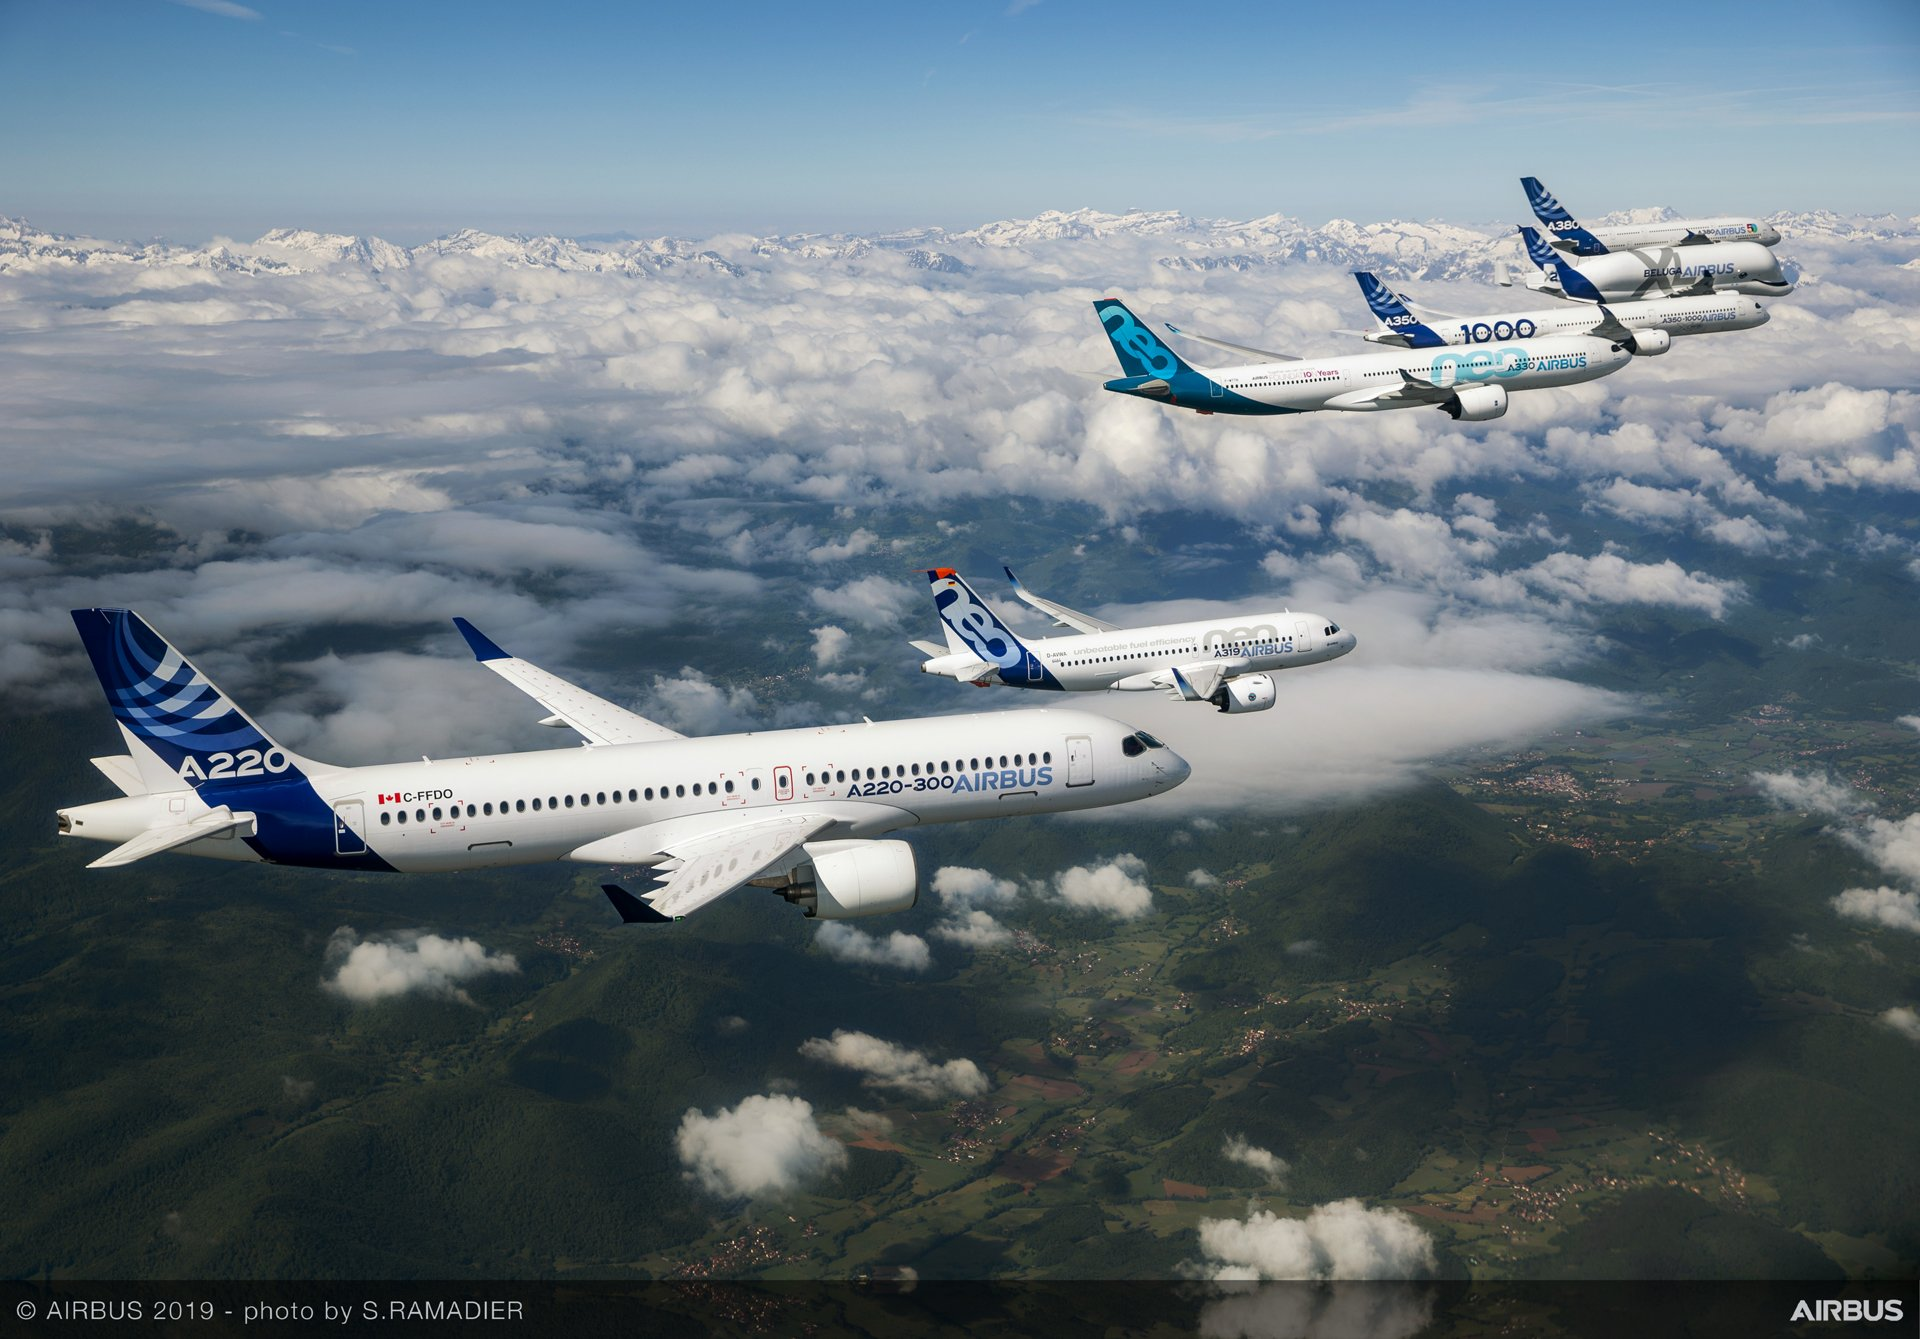 Airbus sees strong demand for its new commercial aircraft products at Paris Air Show 2019